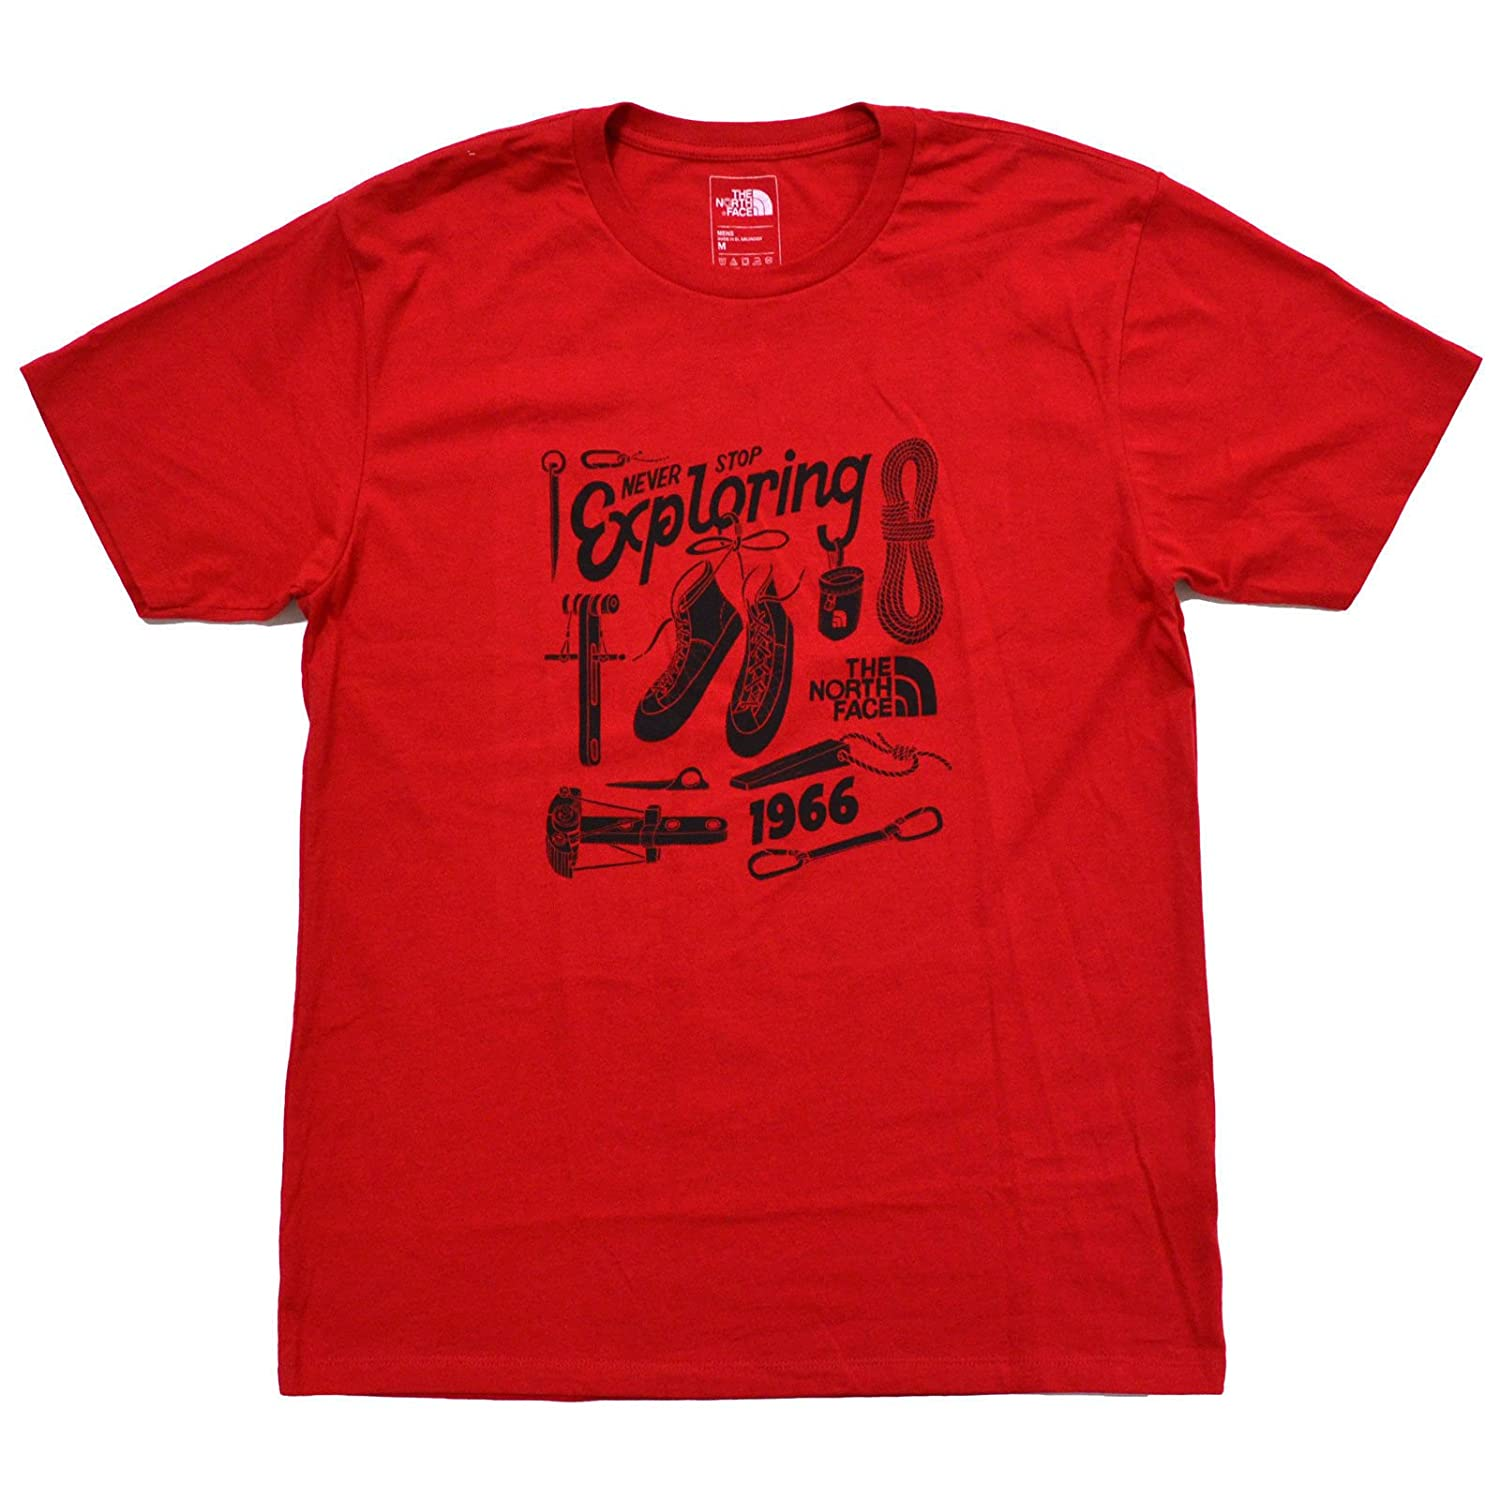 846610a99 Amazon.com: The North Face Mens Never Stop Exploring Graphic T-Shirt ...